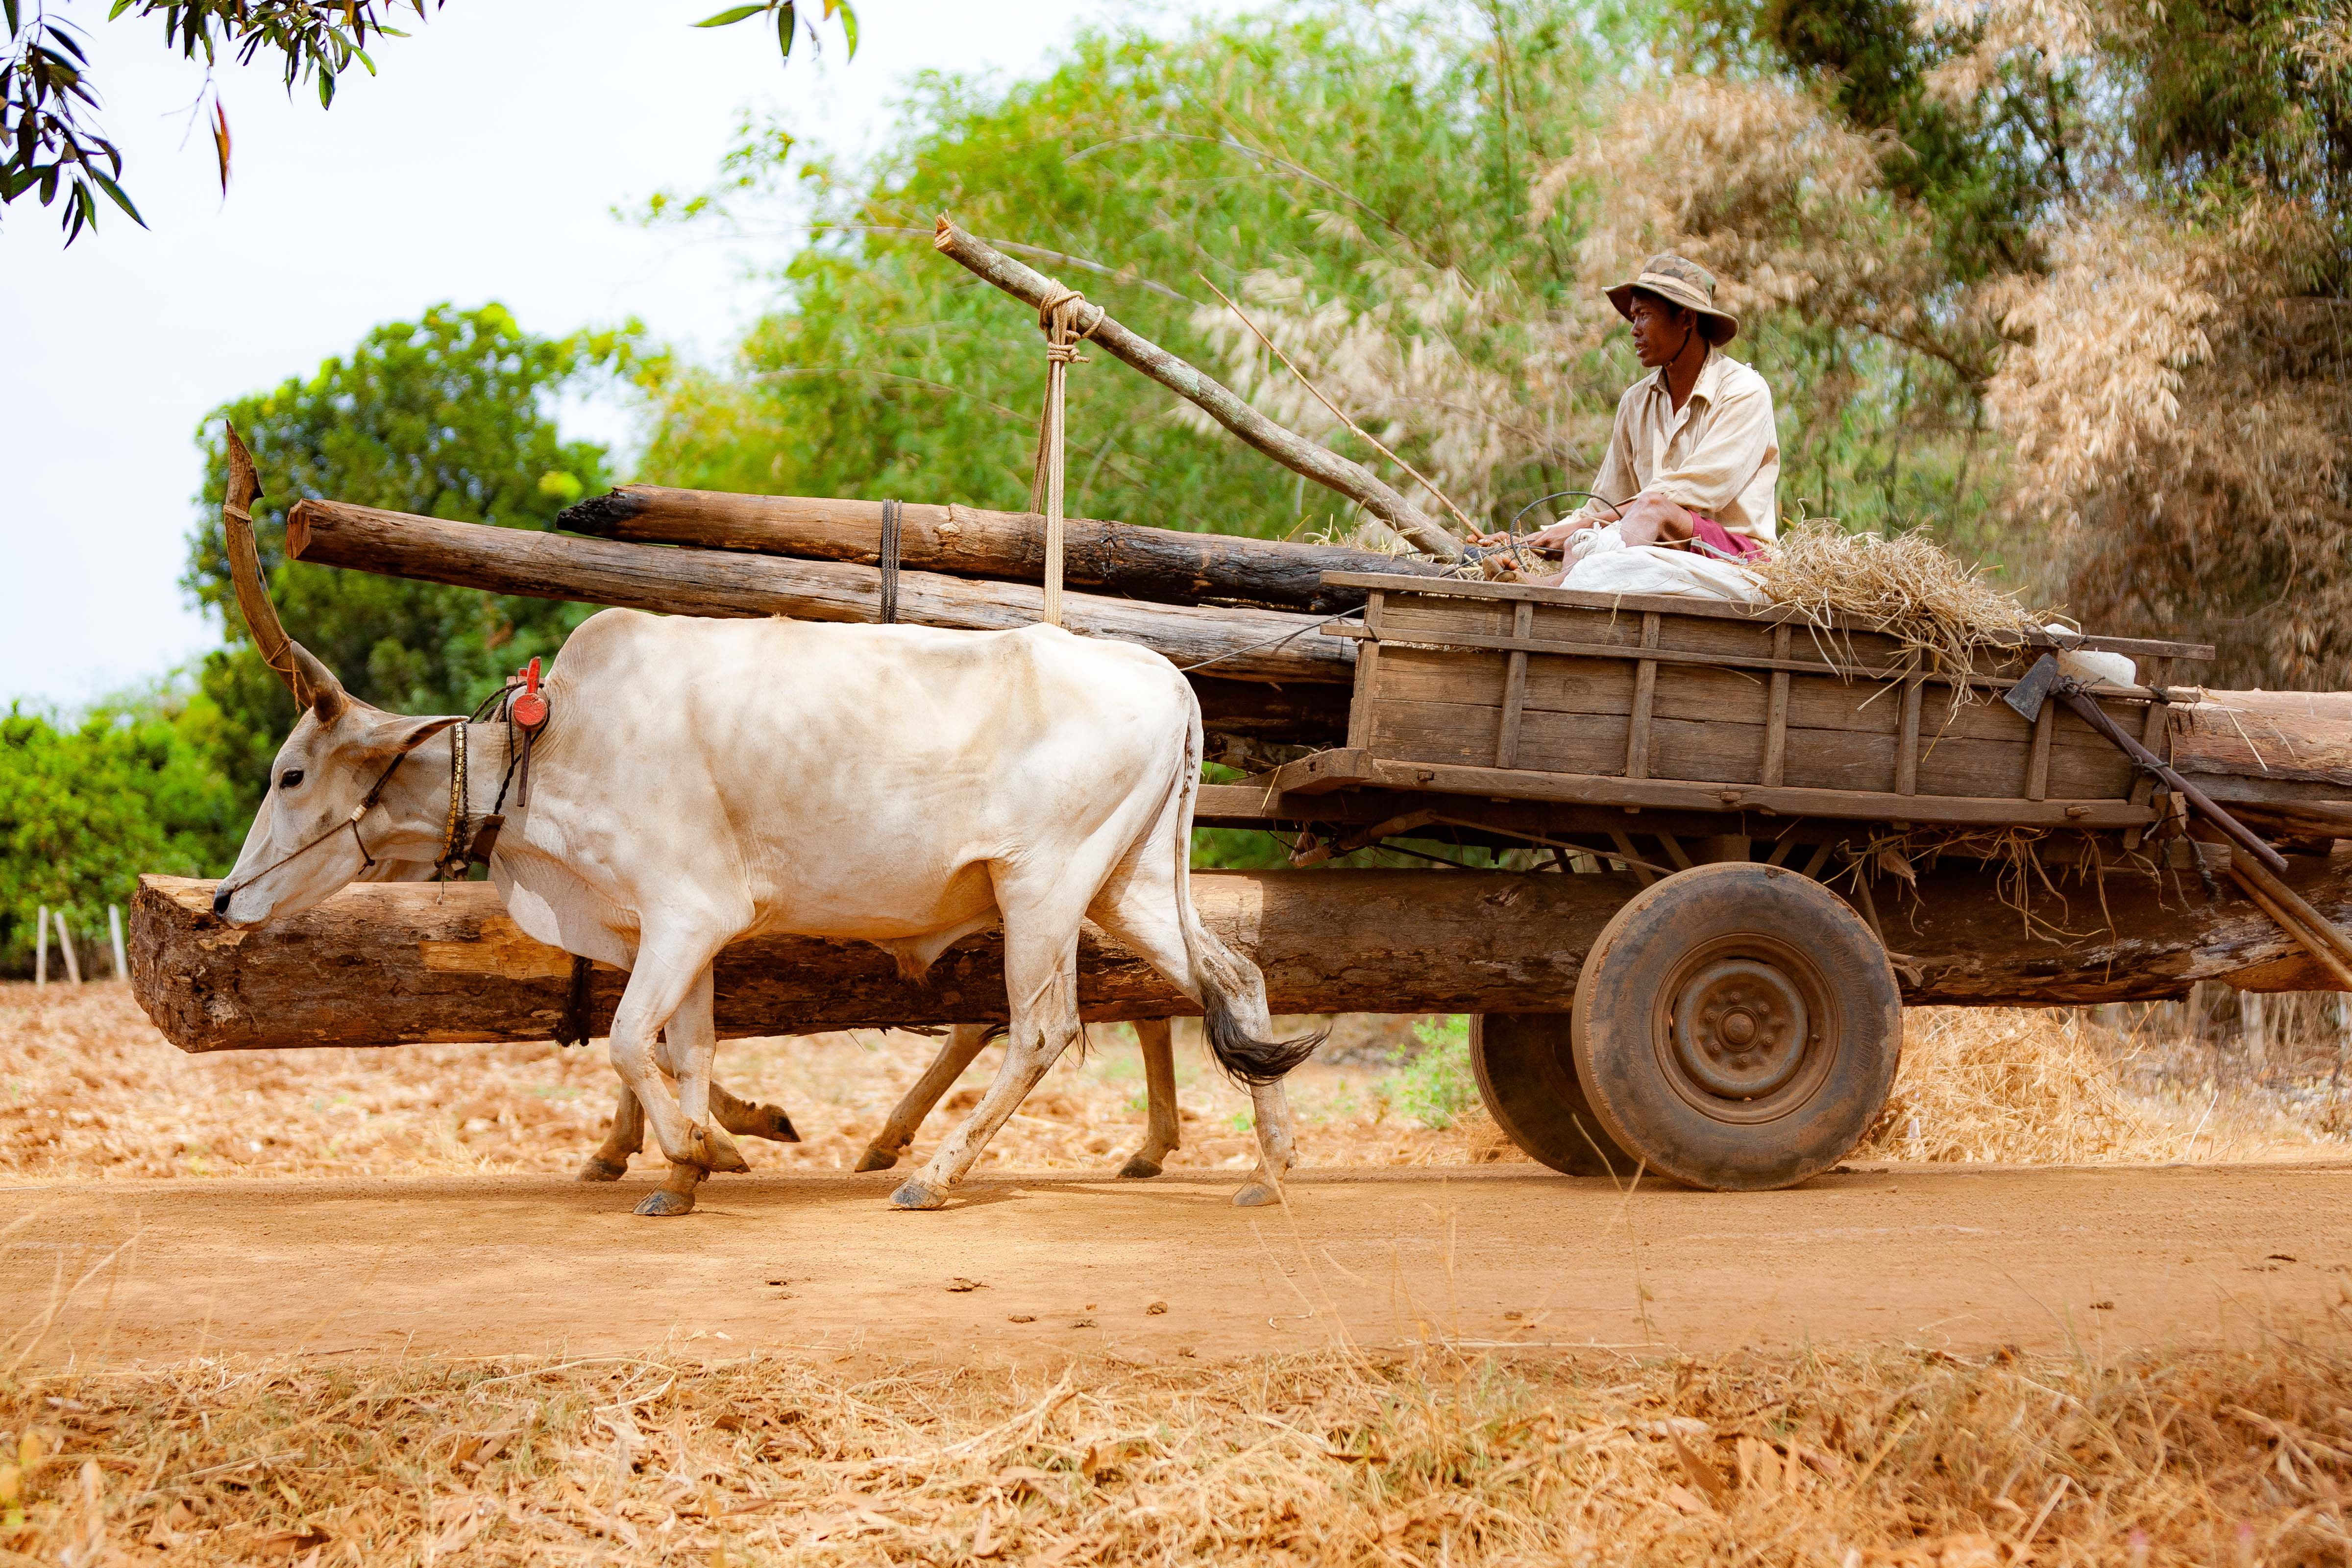 Cambodia, Kampong Chaam Prov, Cow Drawn Logging Cart, 2010, IMG 5424